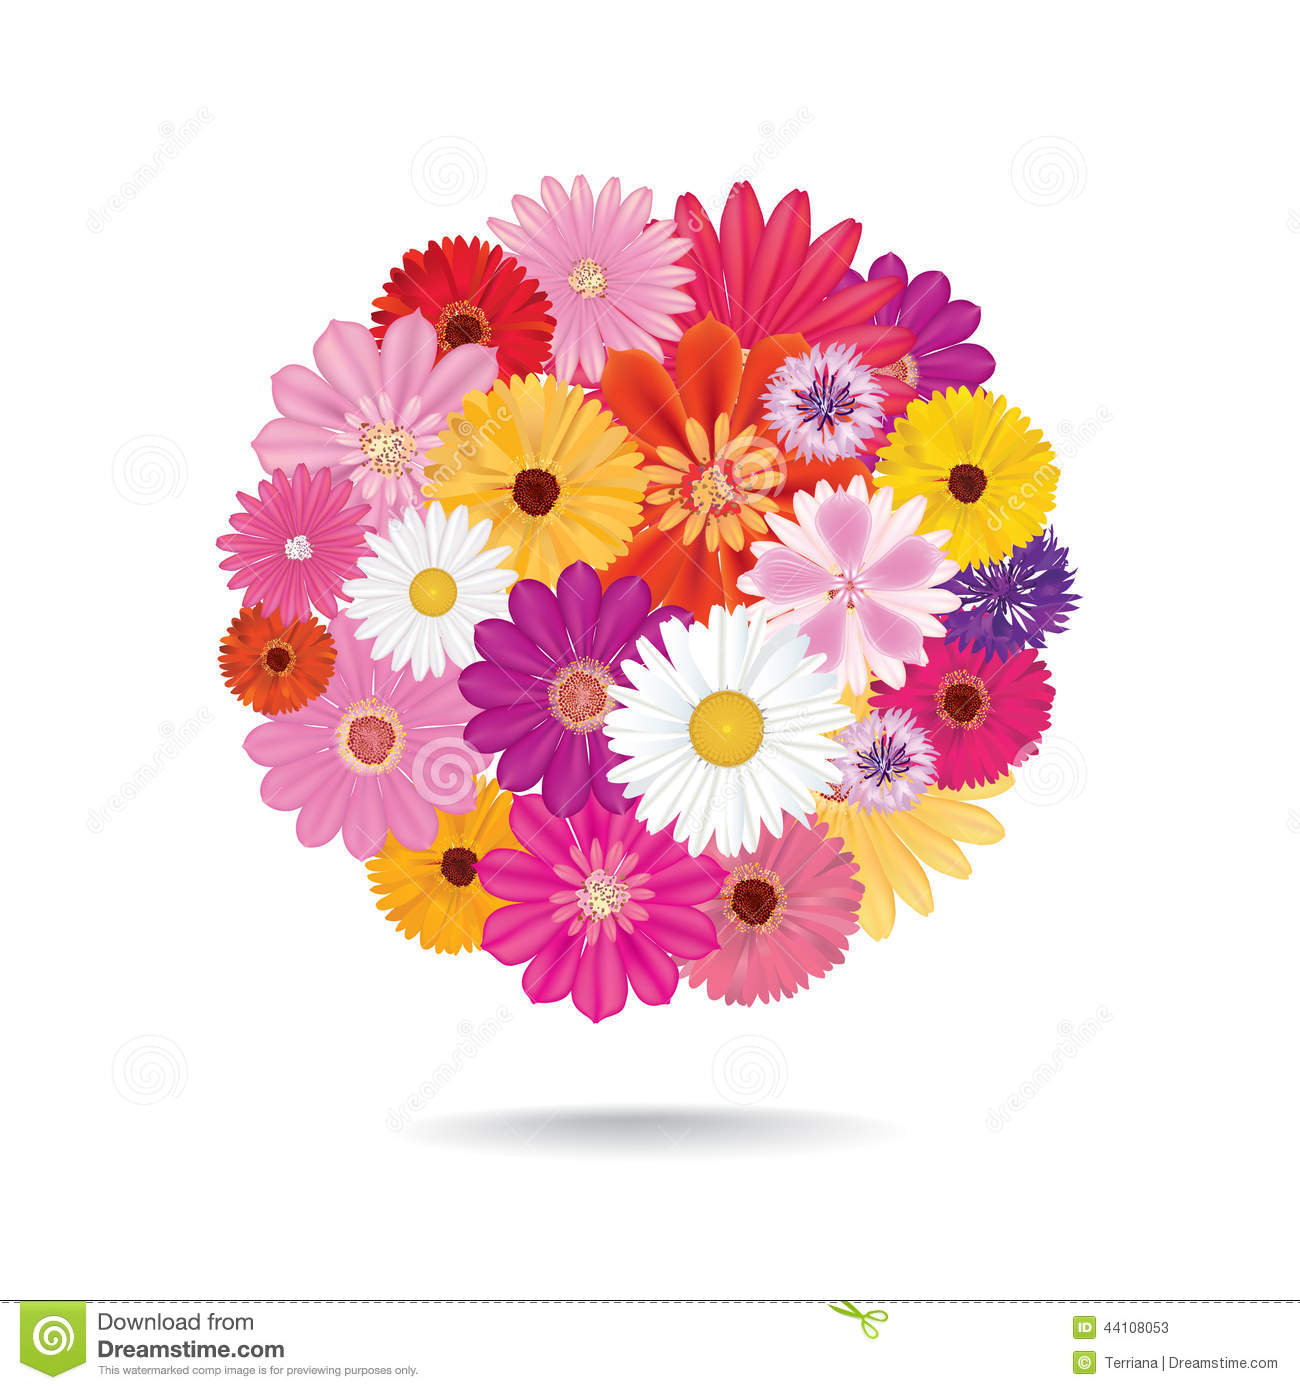 Fall Flowers Wallpaper Free Flower Bouquet Floral Posy Isolated On White Background